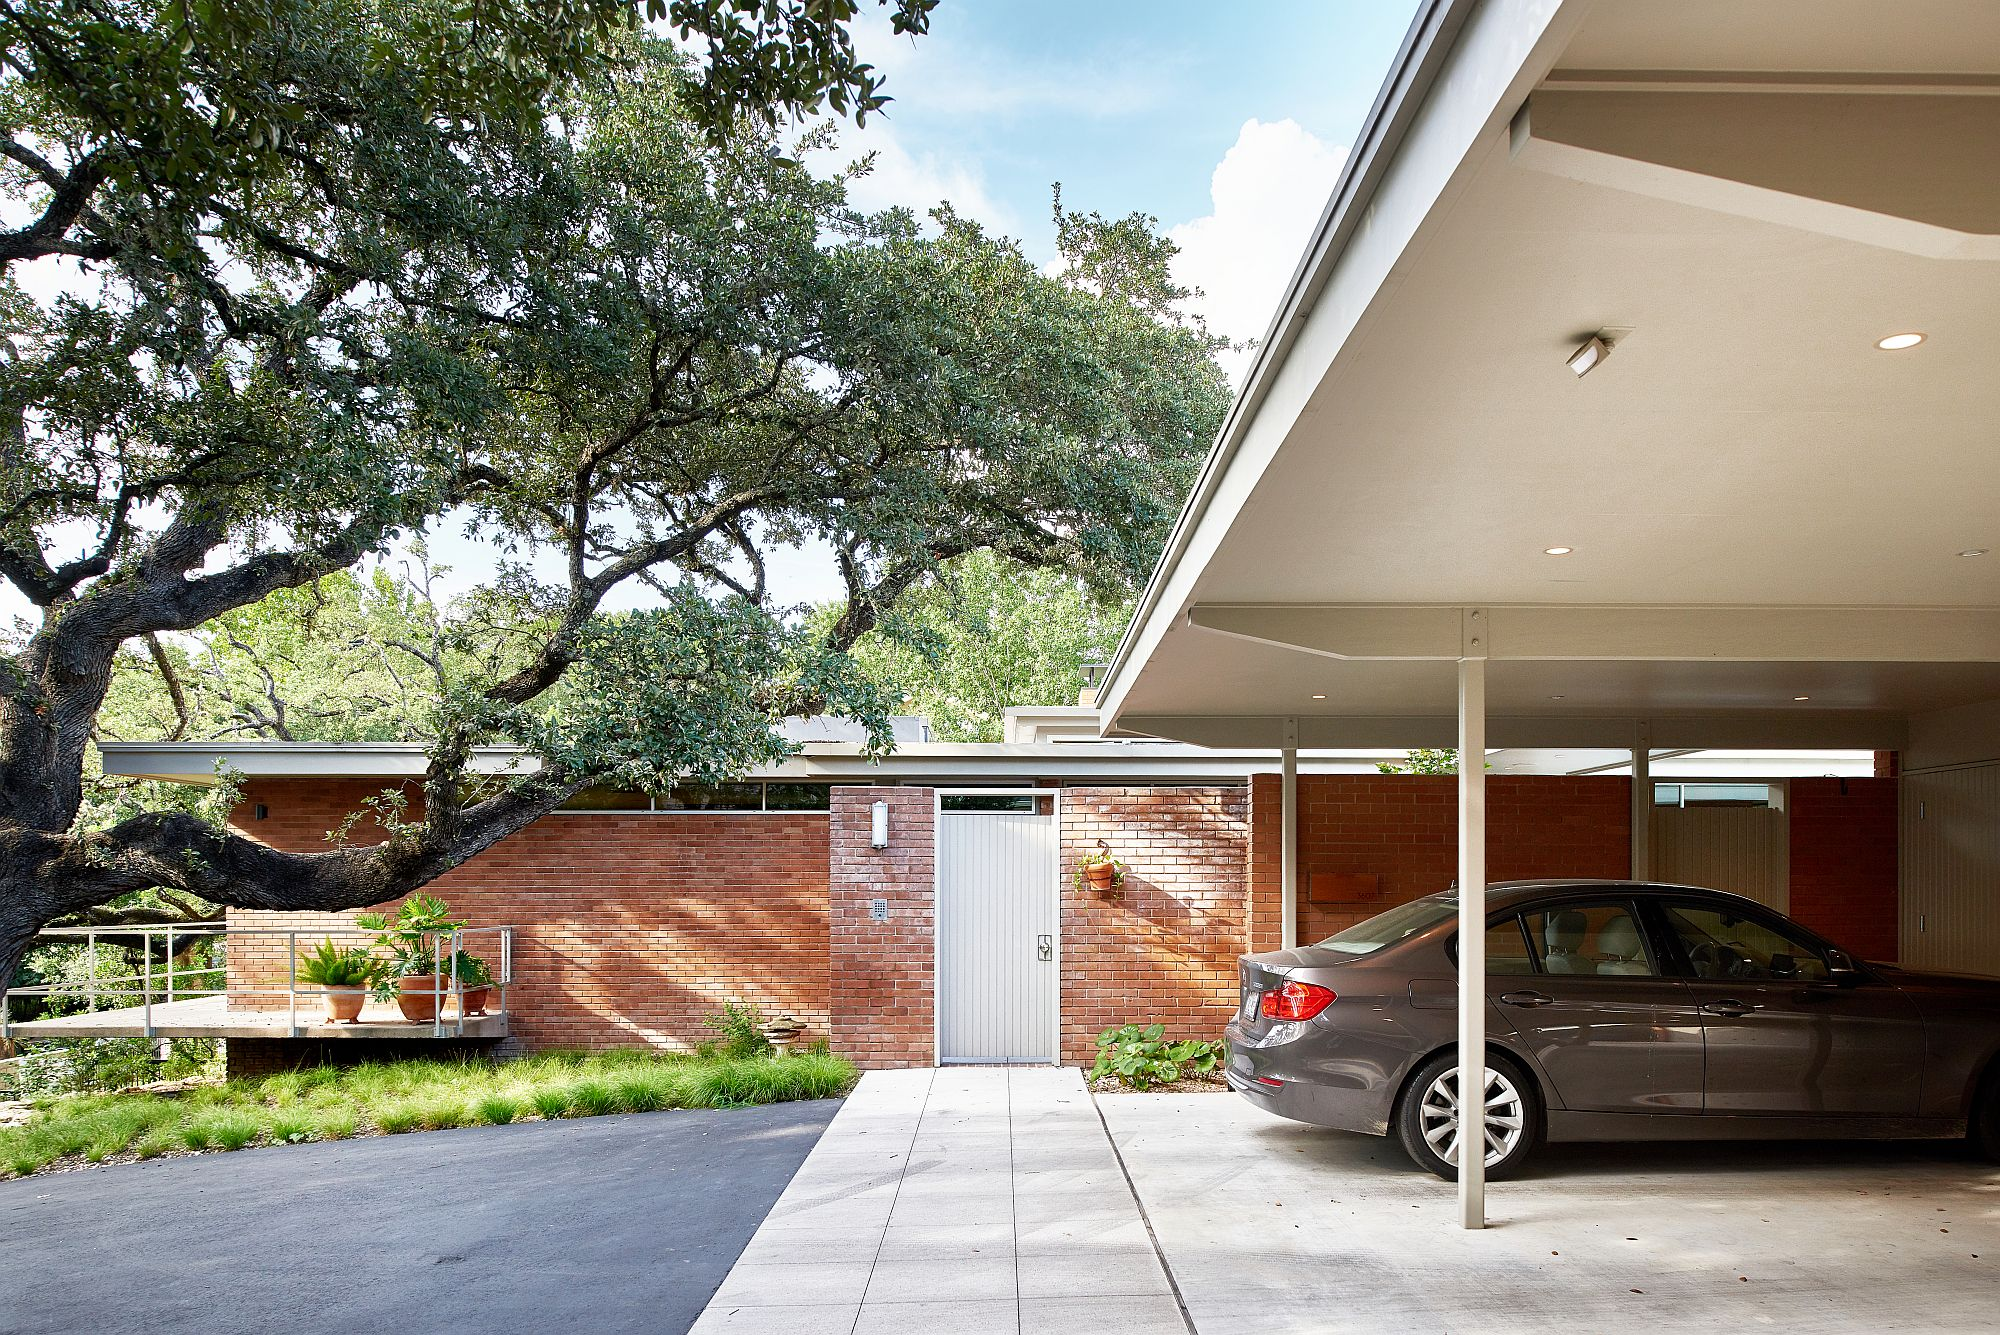 Carport and entry at the Balcones Residence